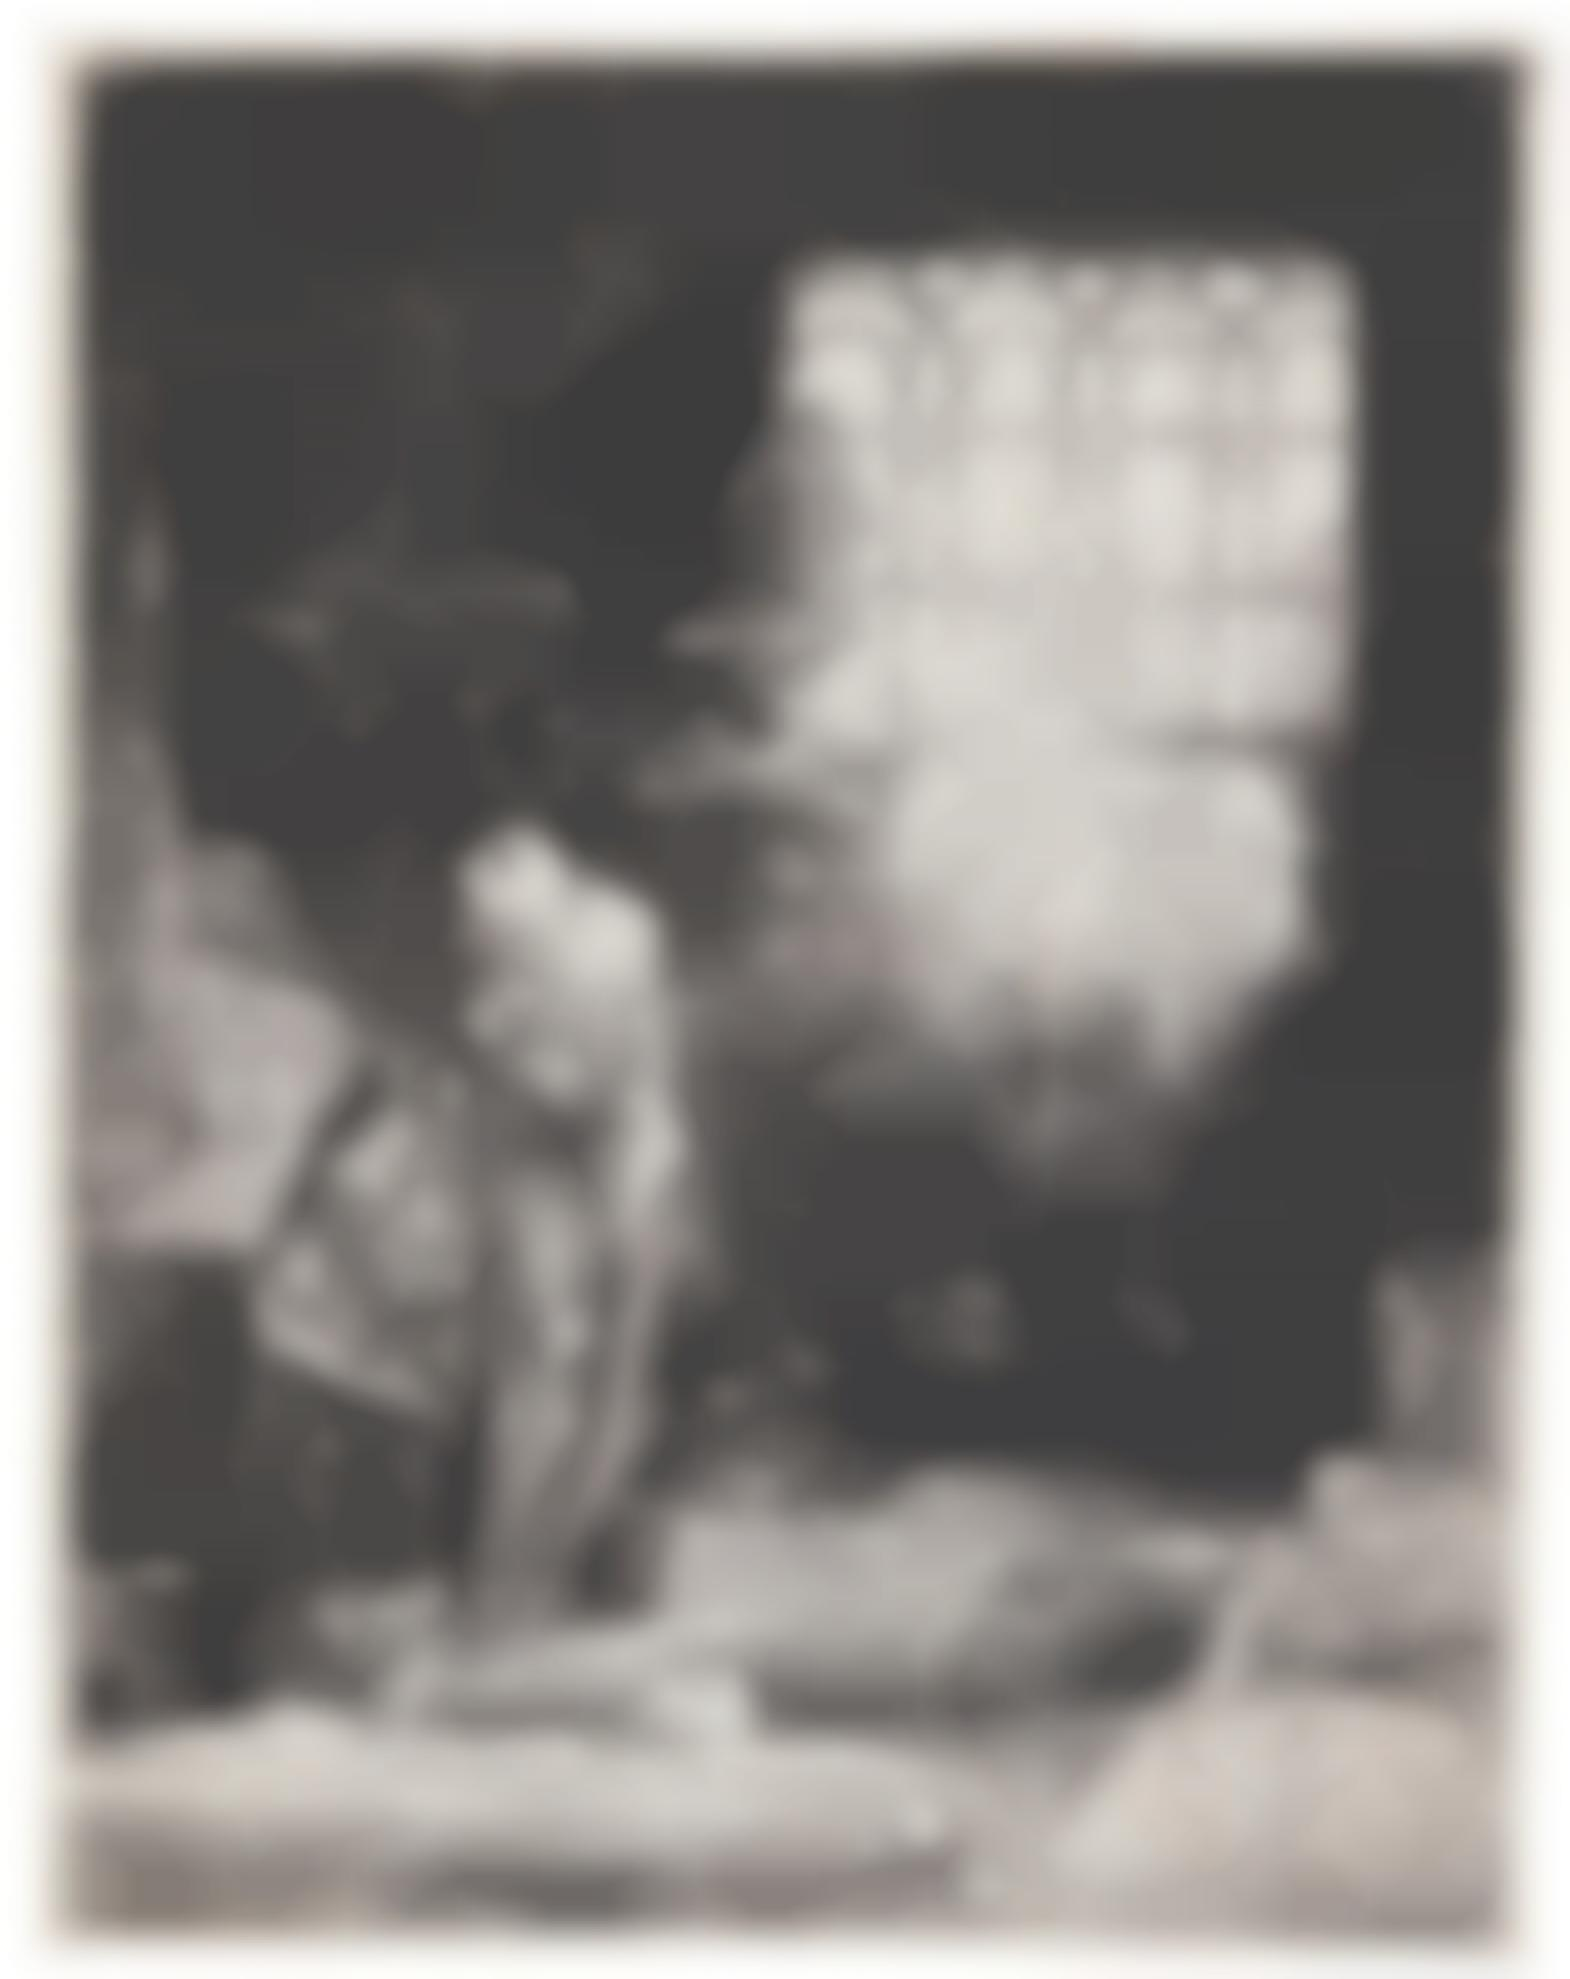 Rembrandt van Rijn-(i) A Scholar In His Study (Faust) (B., Holl., New Holl. 270; H. 260); (ii) Menasseh Ben Israel (New Holl. 156); (iii) Clement de Jonghe, Printseller (New Holl. 264); (iv) Pieter Haaringh ('Young Haaringh') (New Holl. 292); (v) Bald Headed Man in Profile Right: Small Bust, The Artist's Father (?) (New Holl. 61)-1652